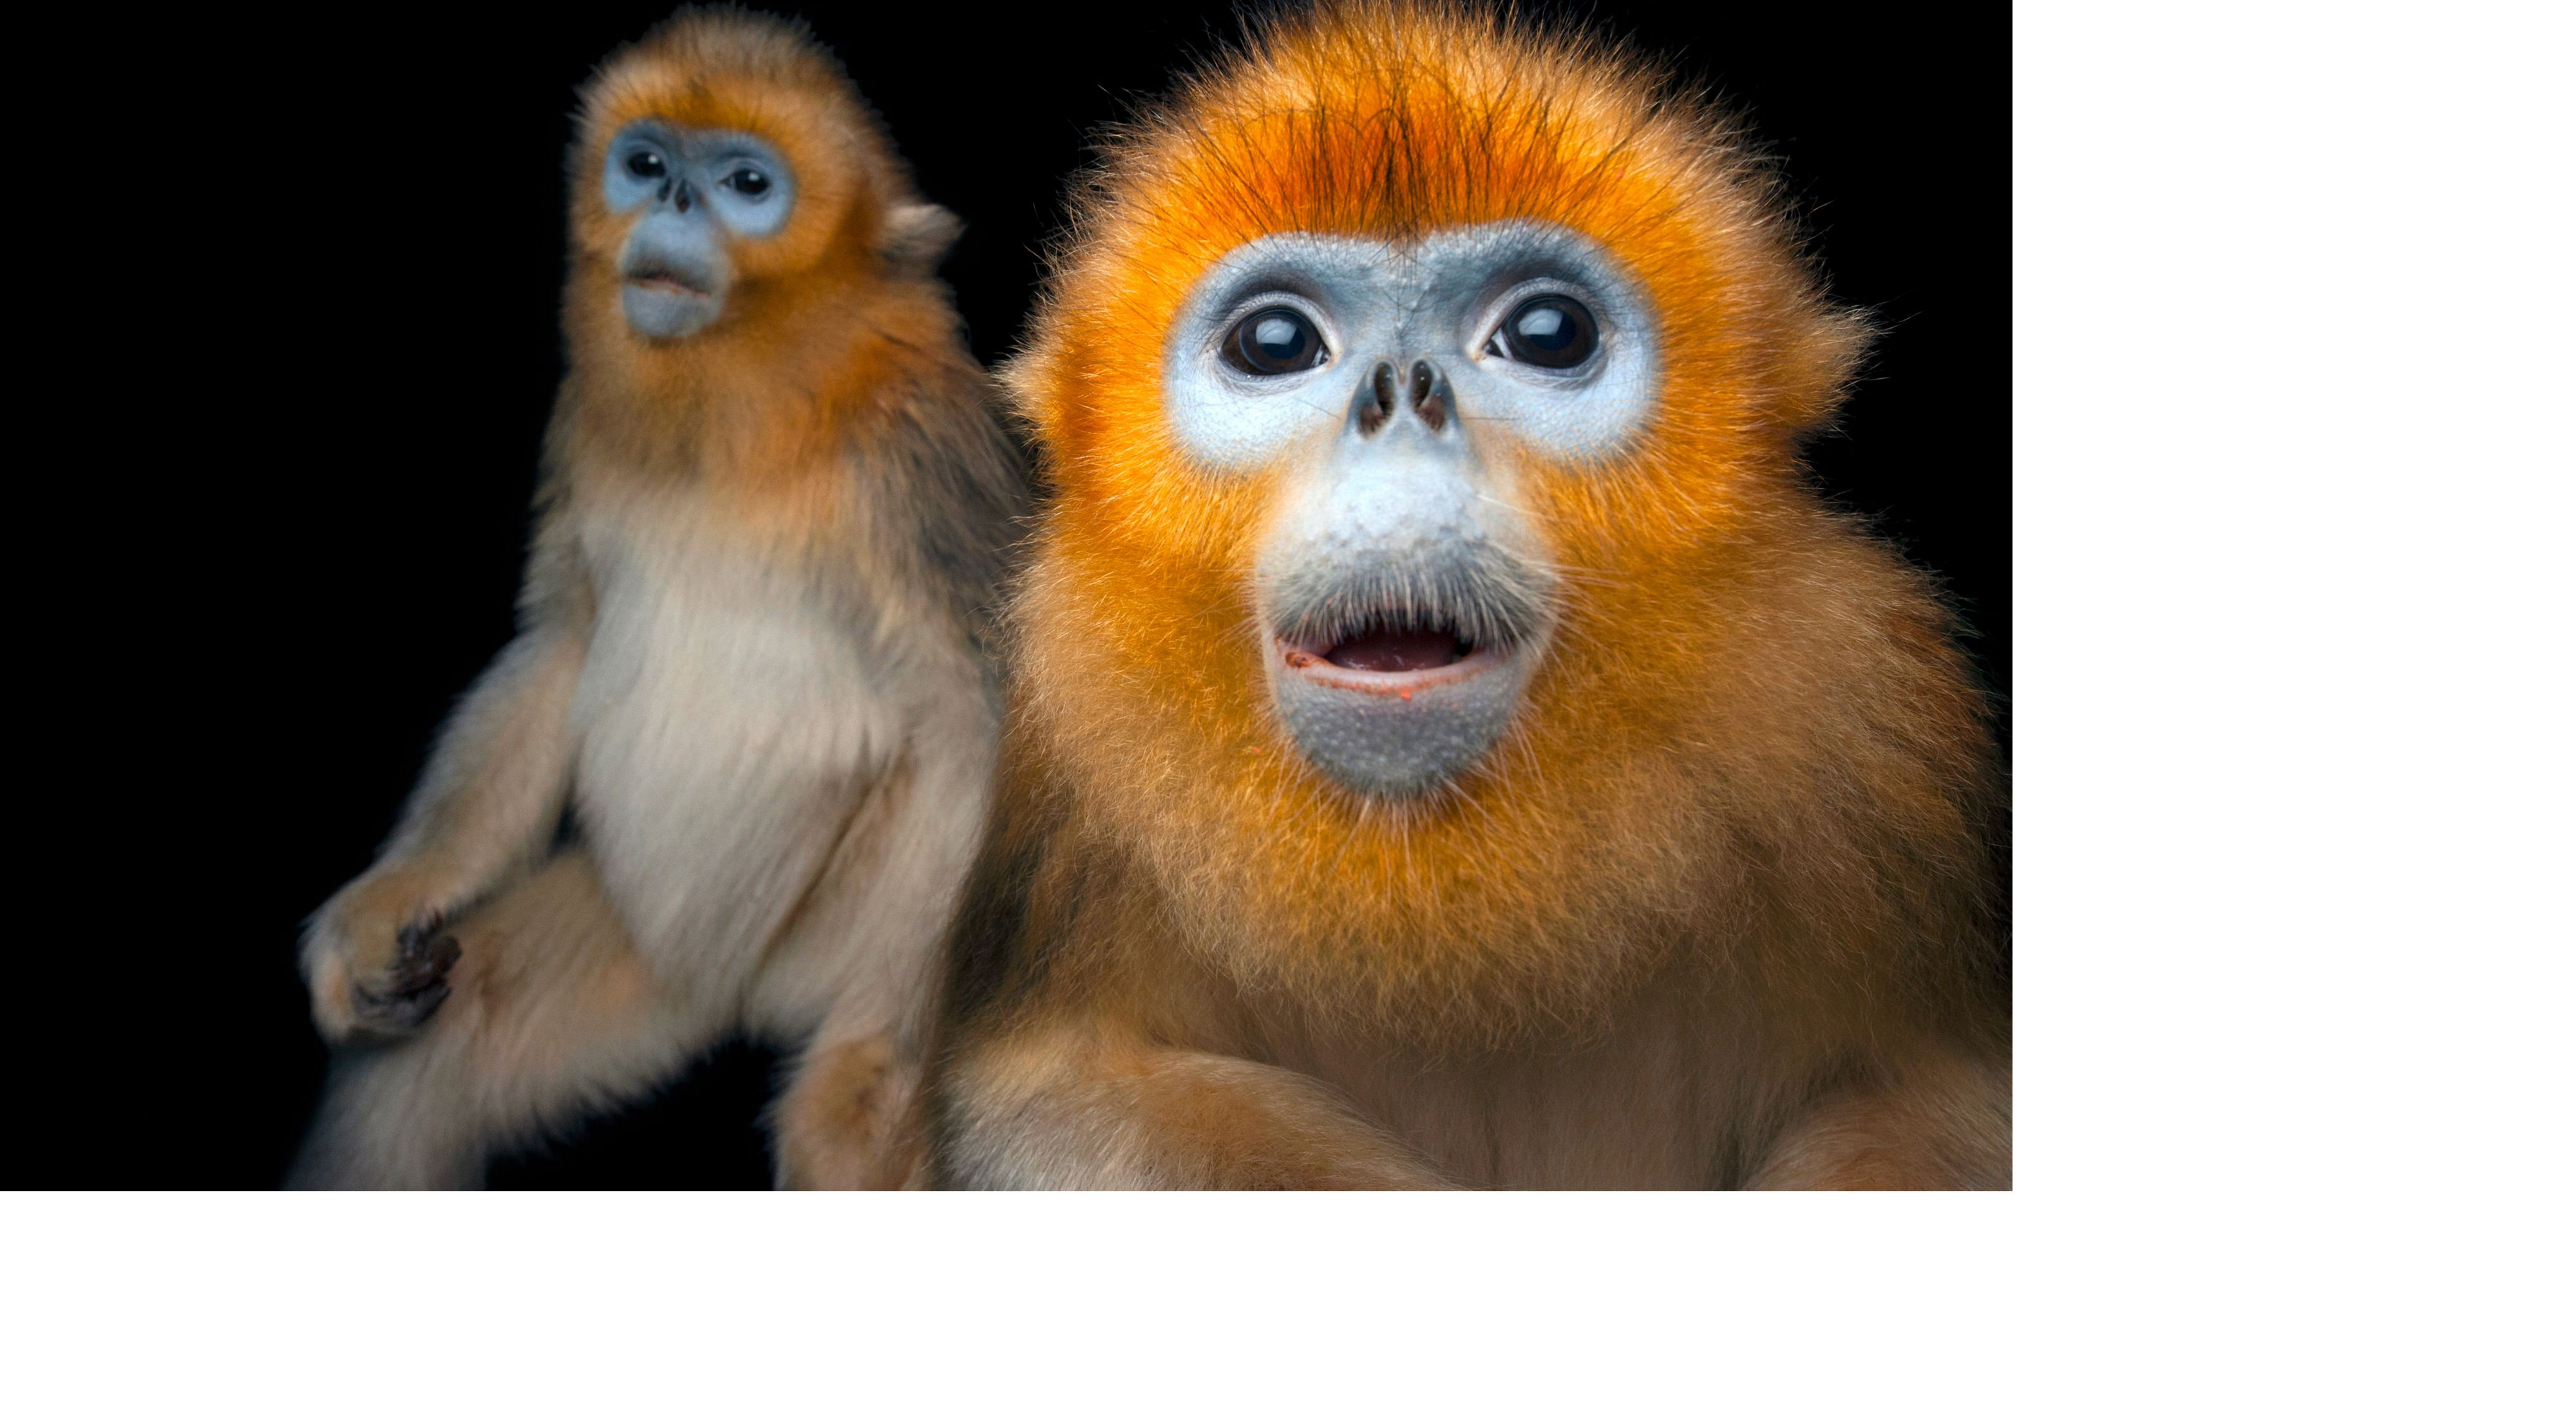 Two Golden snub-nosed monkeys, Rhinopithecus roxellana, at Ocean Park Hong Kong. Part of the National Geographic Photo Ark, natgeophotoark.org.